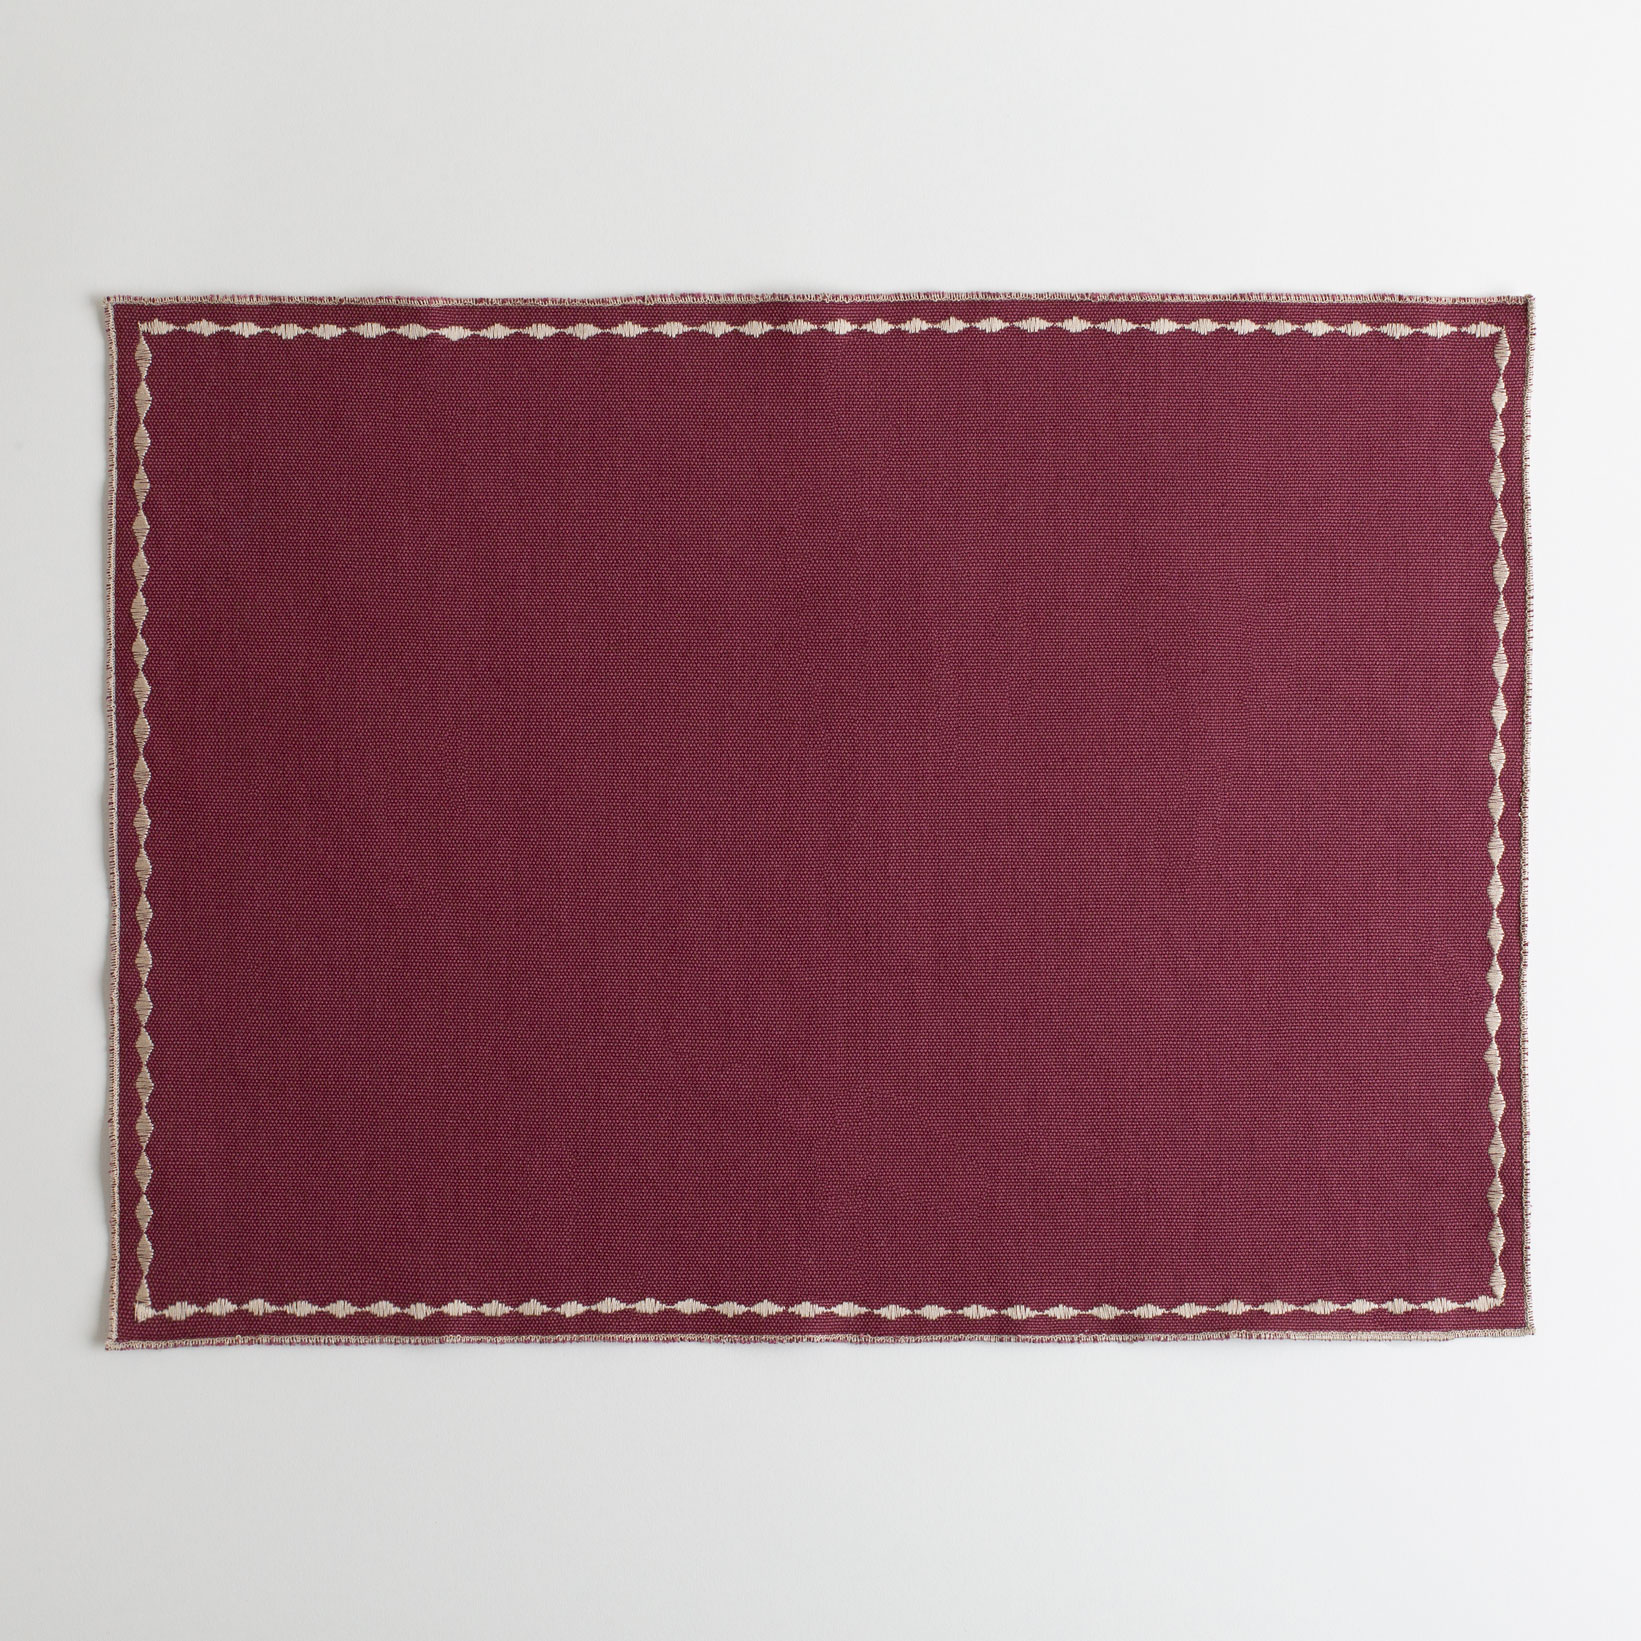 Merlot placemat with decorative stitching